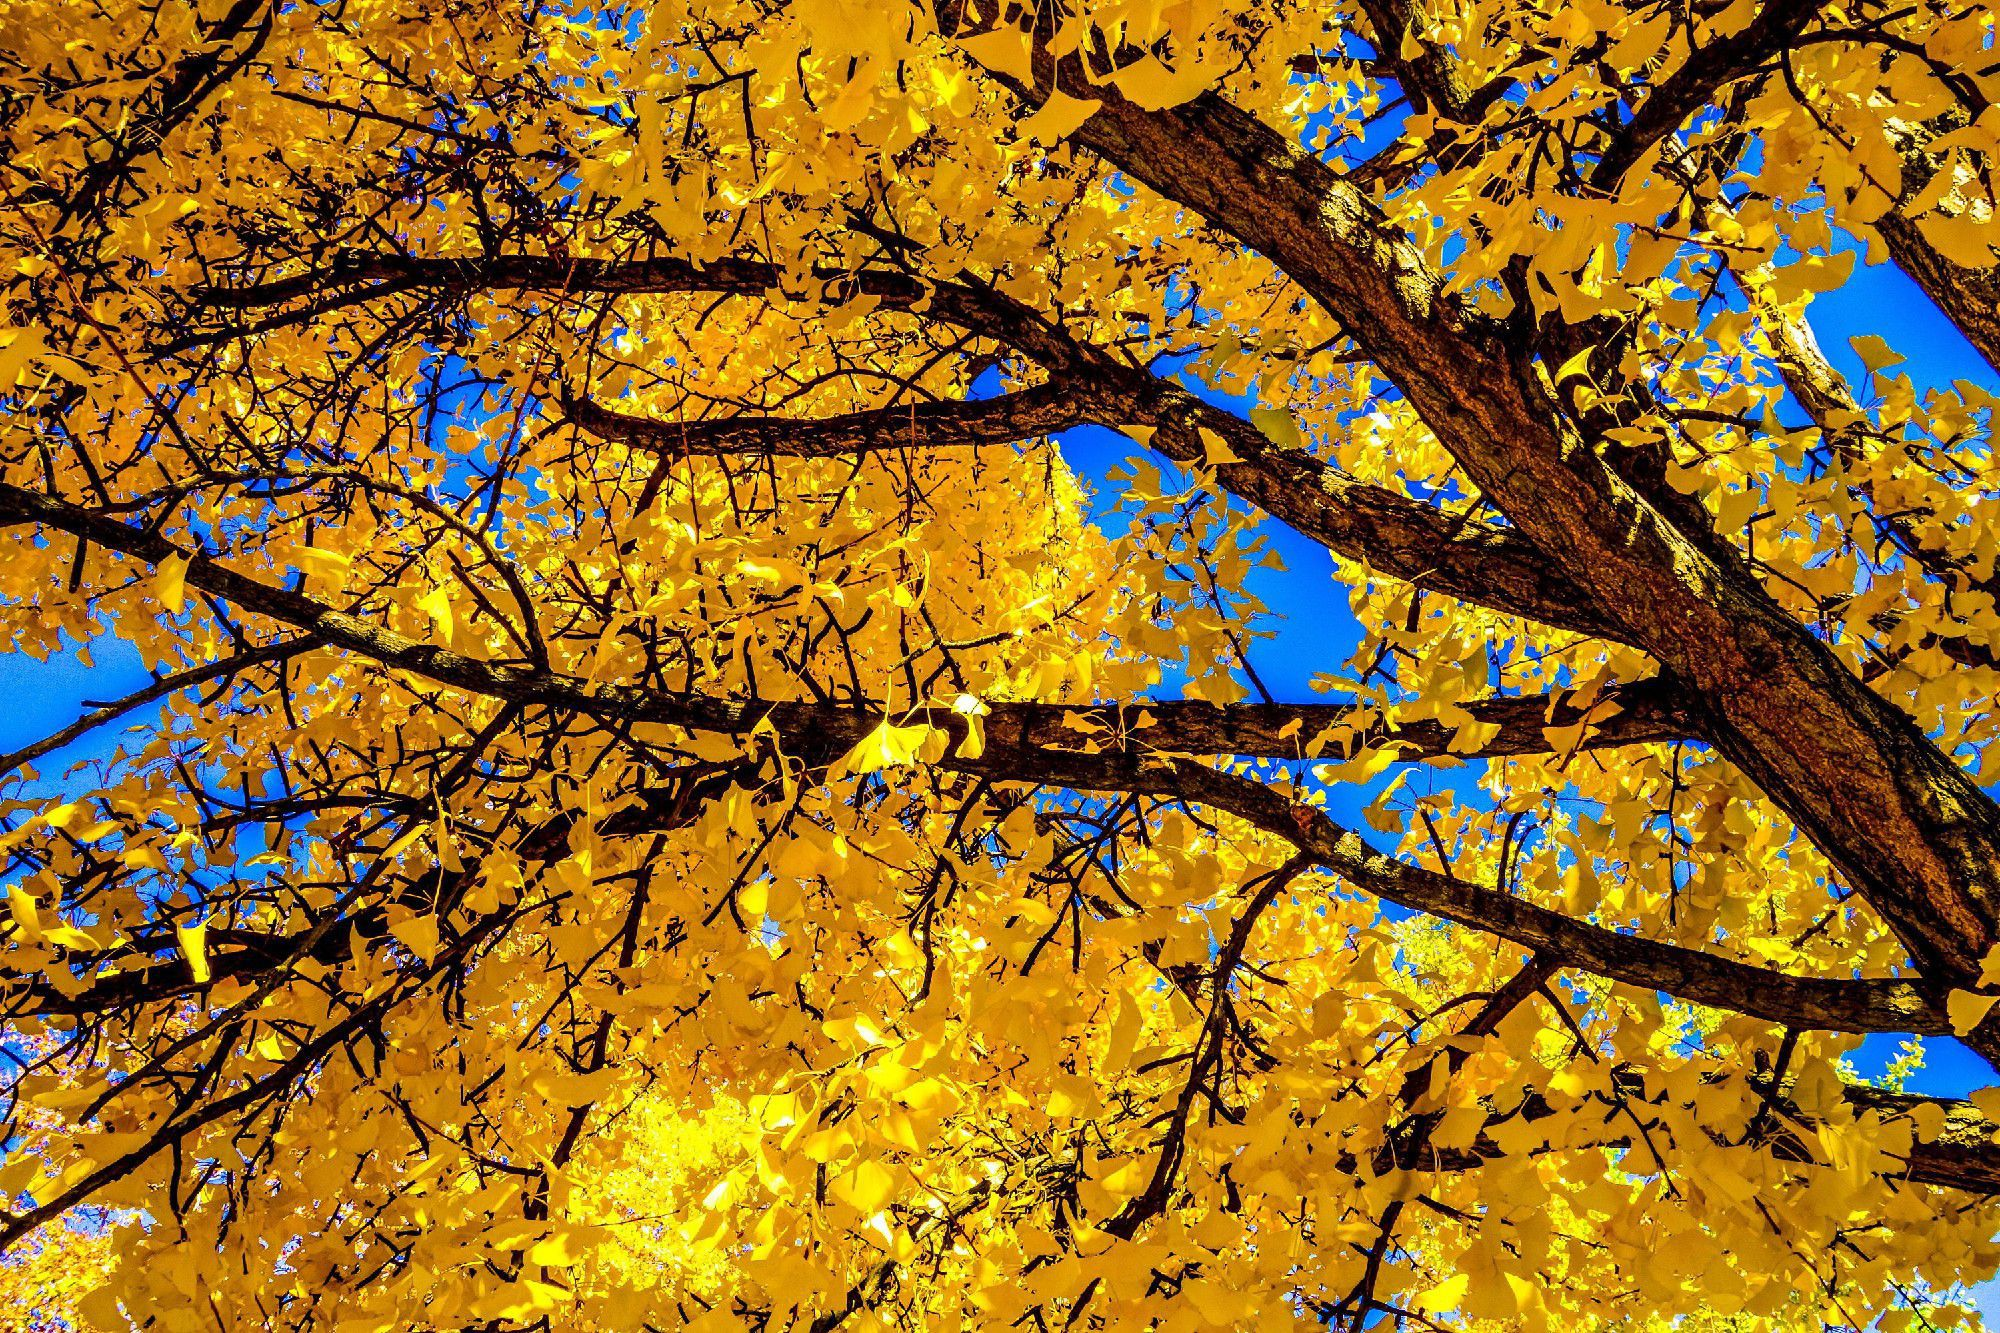 Autumn Leaves HD Wallpaper